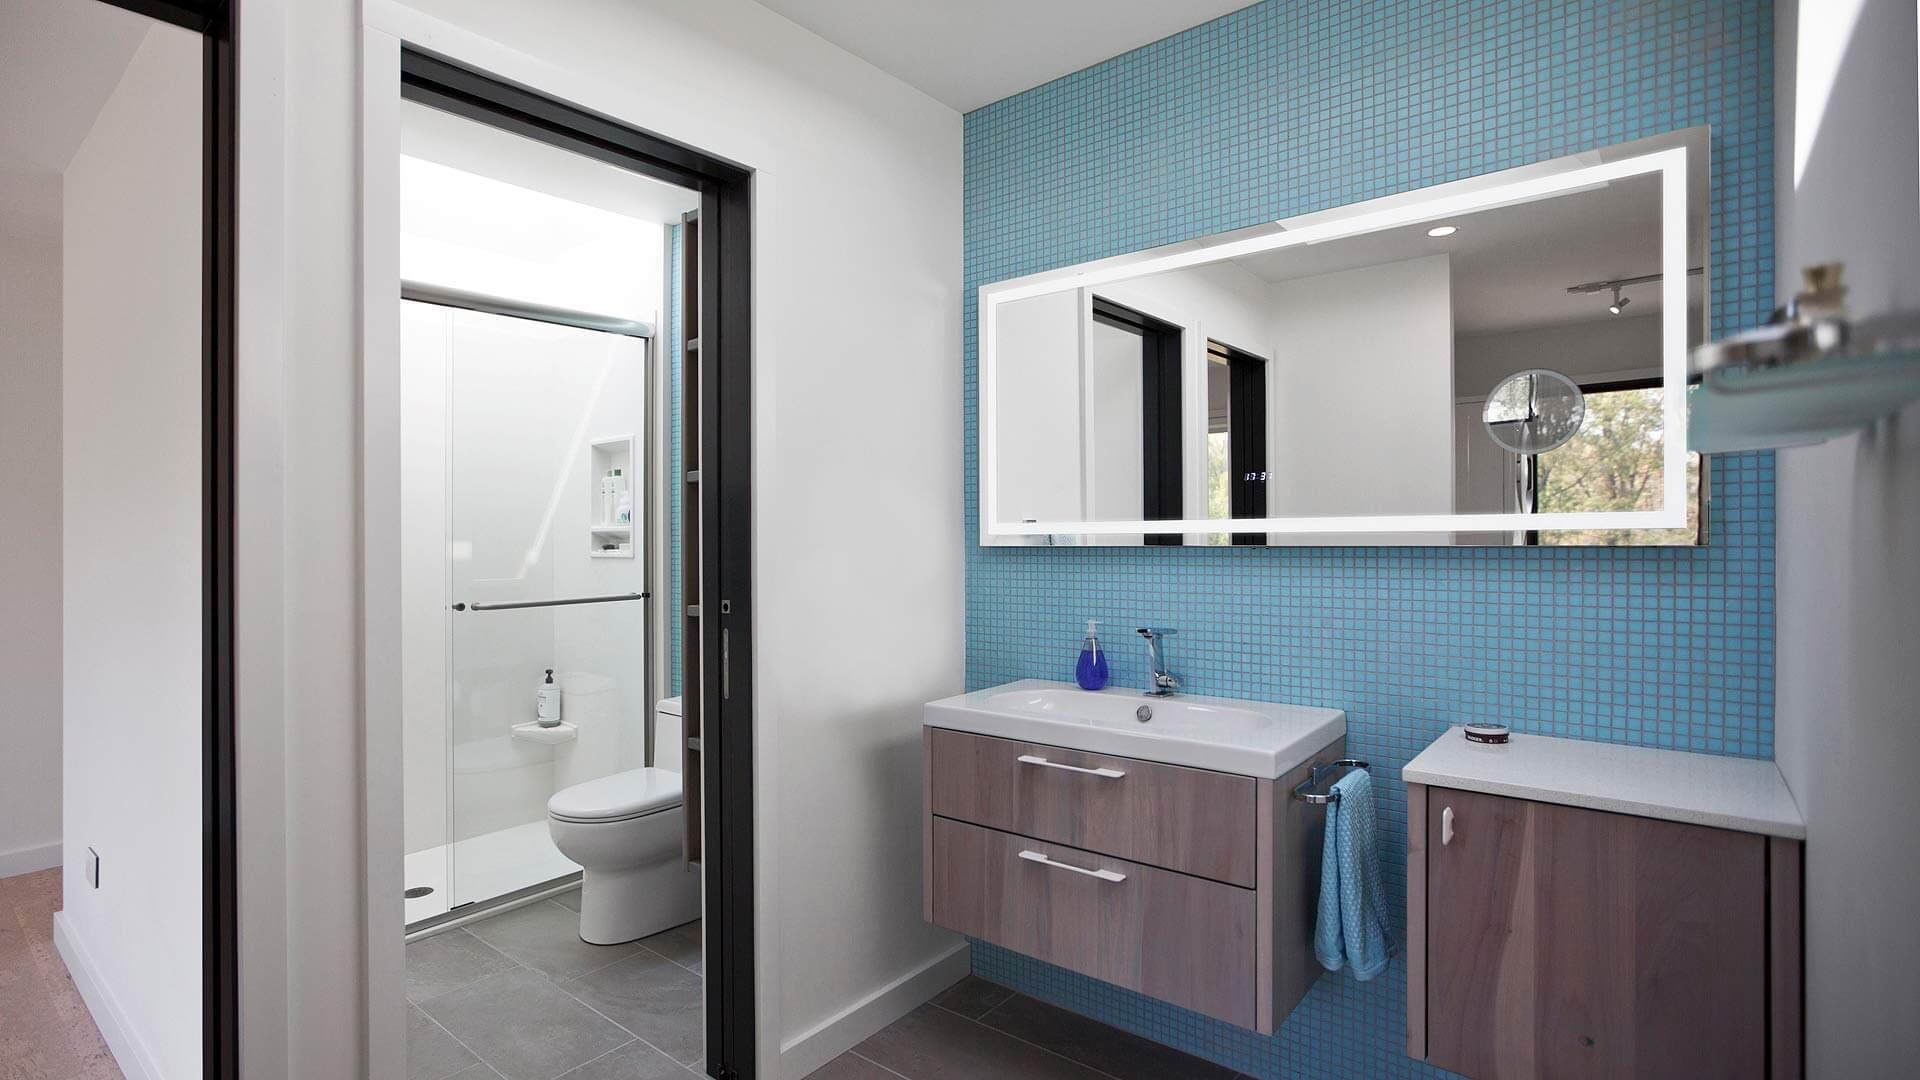 Kid Bathroom with Skylights, blue mosaic tile, lighted mirror, custom wall-hung vanity, shower skylight, vanity skylight, porcelain tile floor - New Modern House 1 - Zionsville, Indiana, Christopher Short, Architect, HAUS Architecture